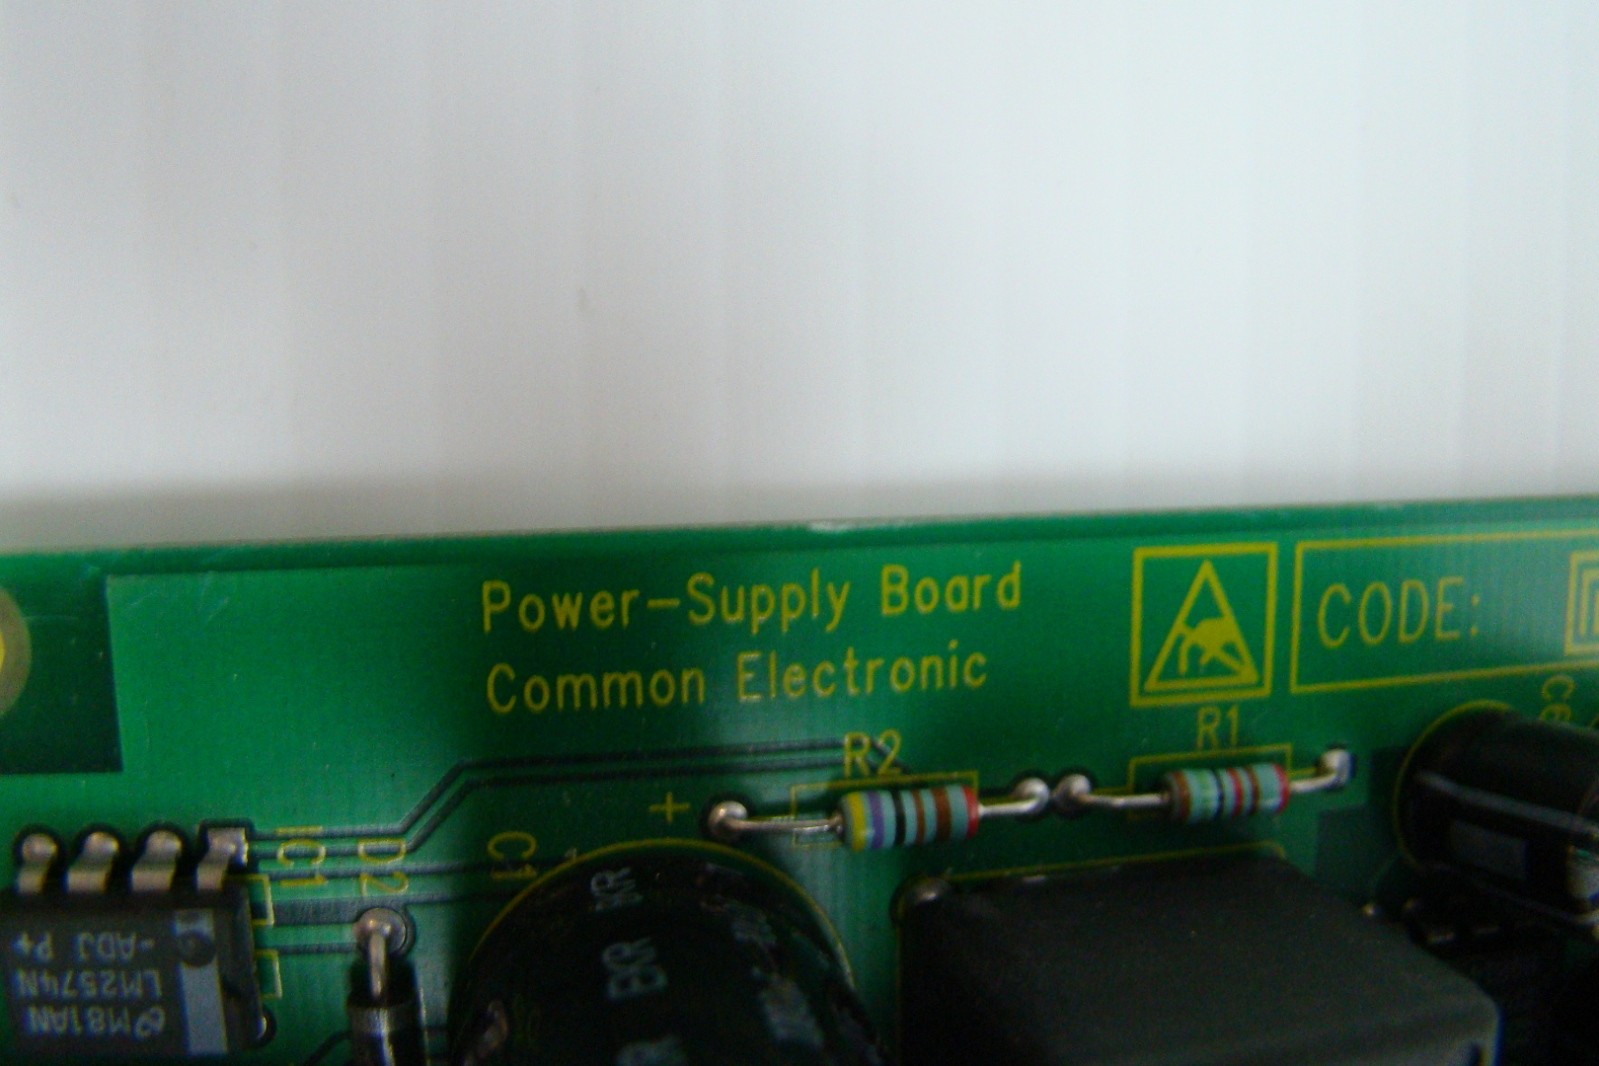 Power Supply Board Common Electronic T200ma 250v Iv N 94vo